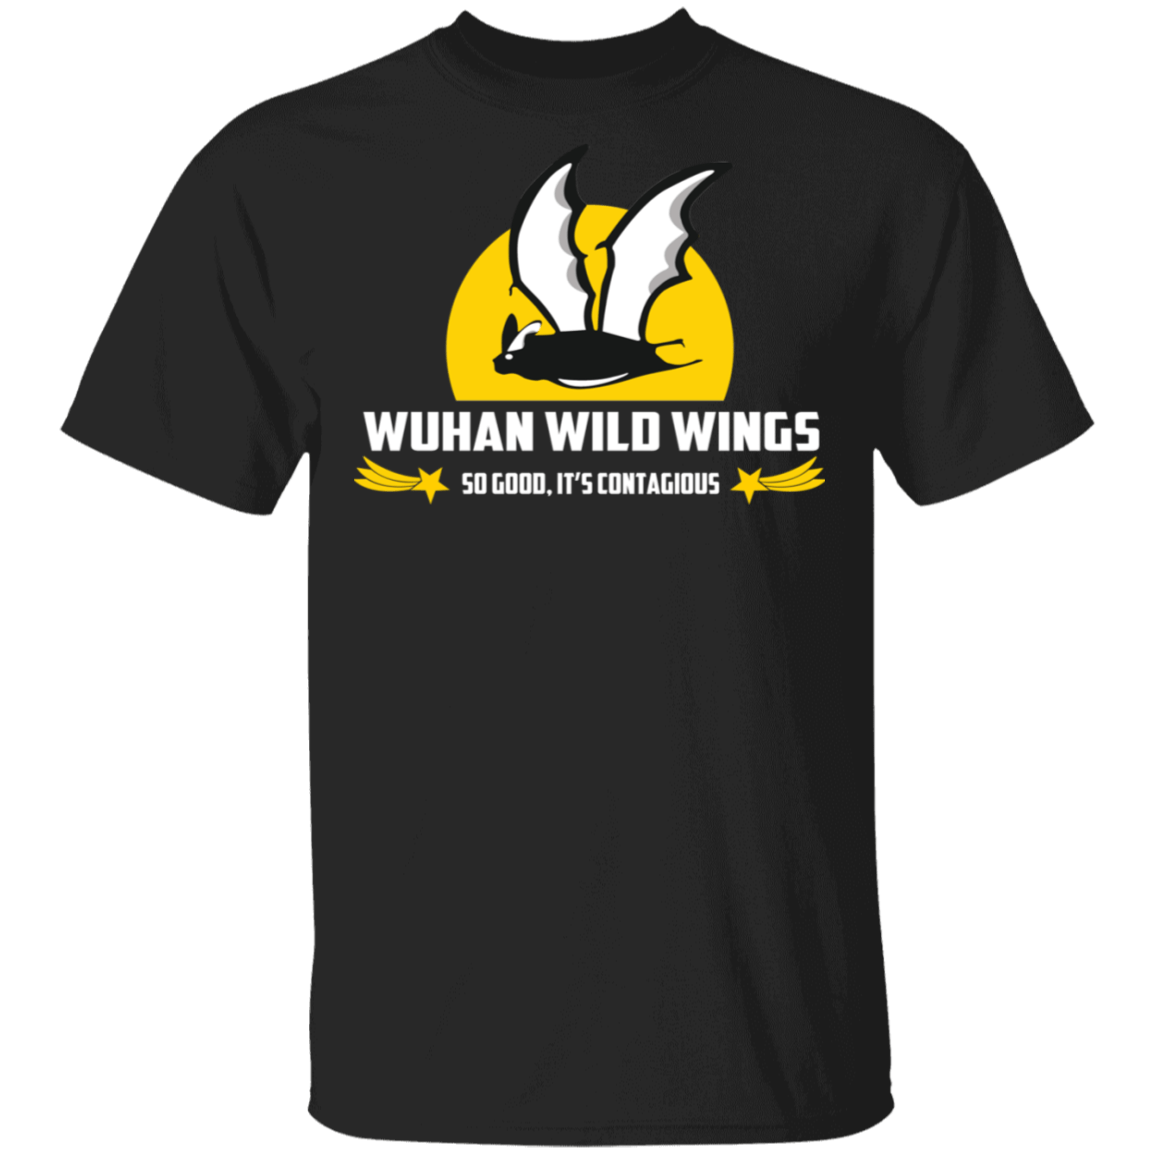 Wuhan Wild Wings So Good It's Contagious T-Shirts, Hoodies 1049-9953-86153446-48144 - Tee Ript